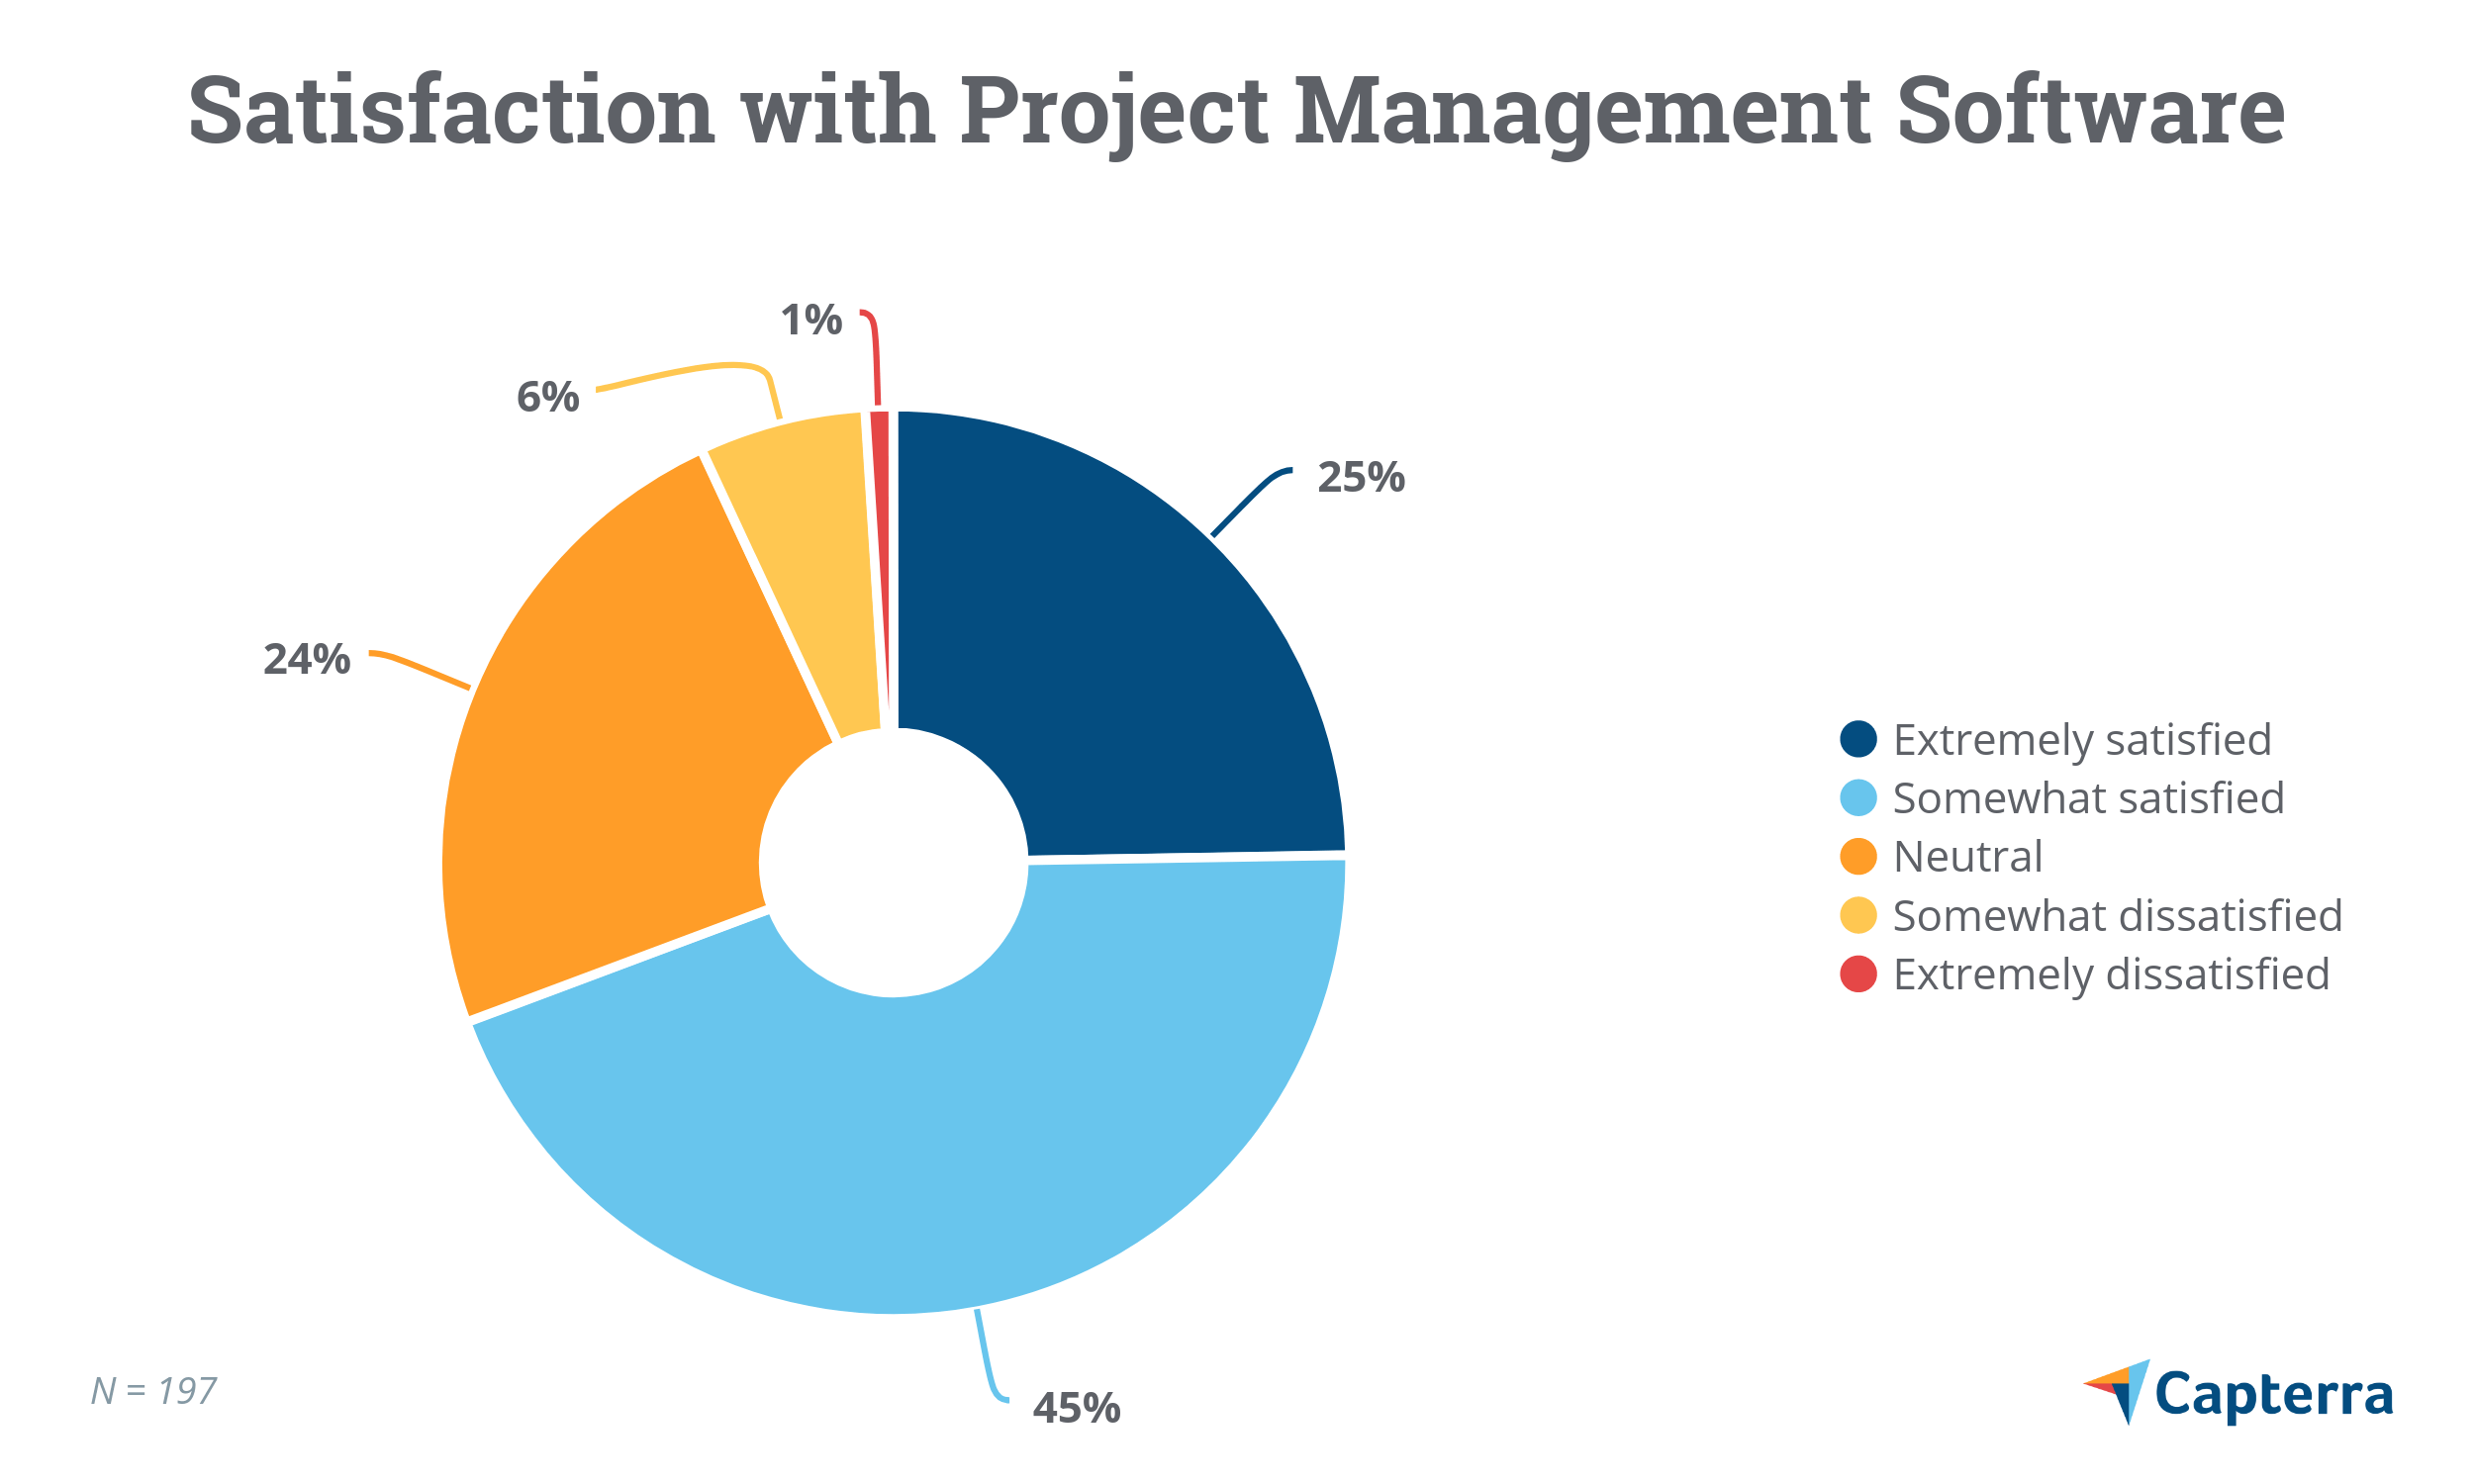 Satisfaction with project management software